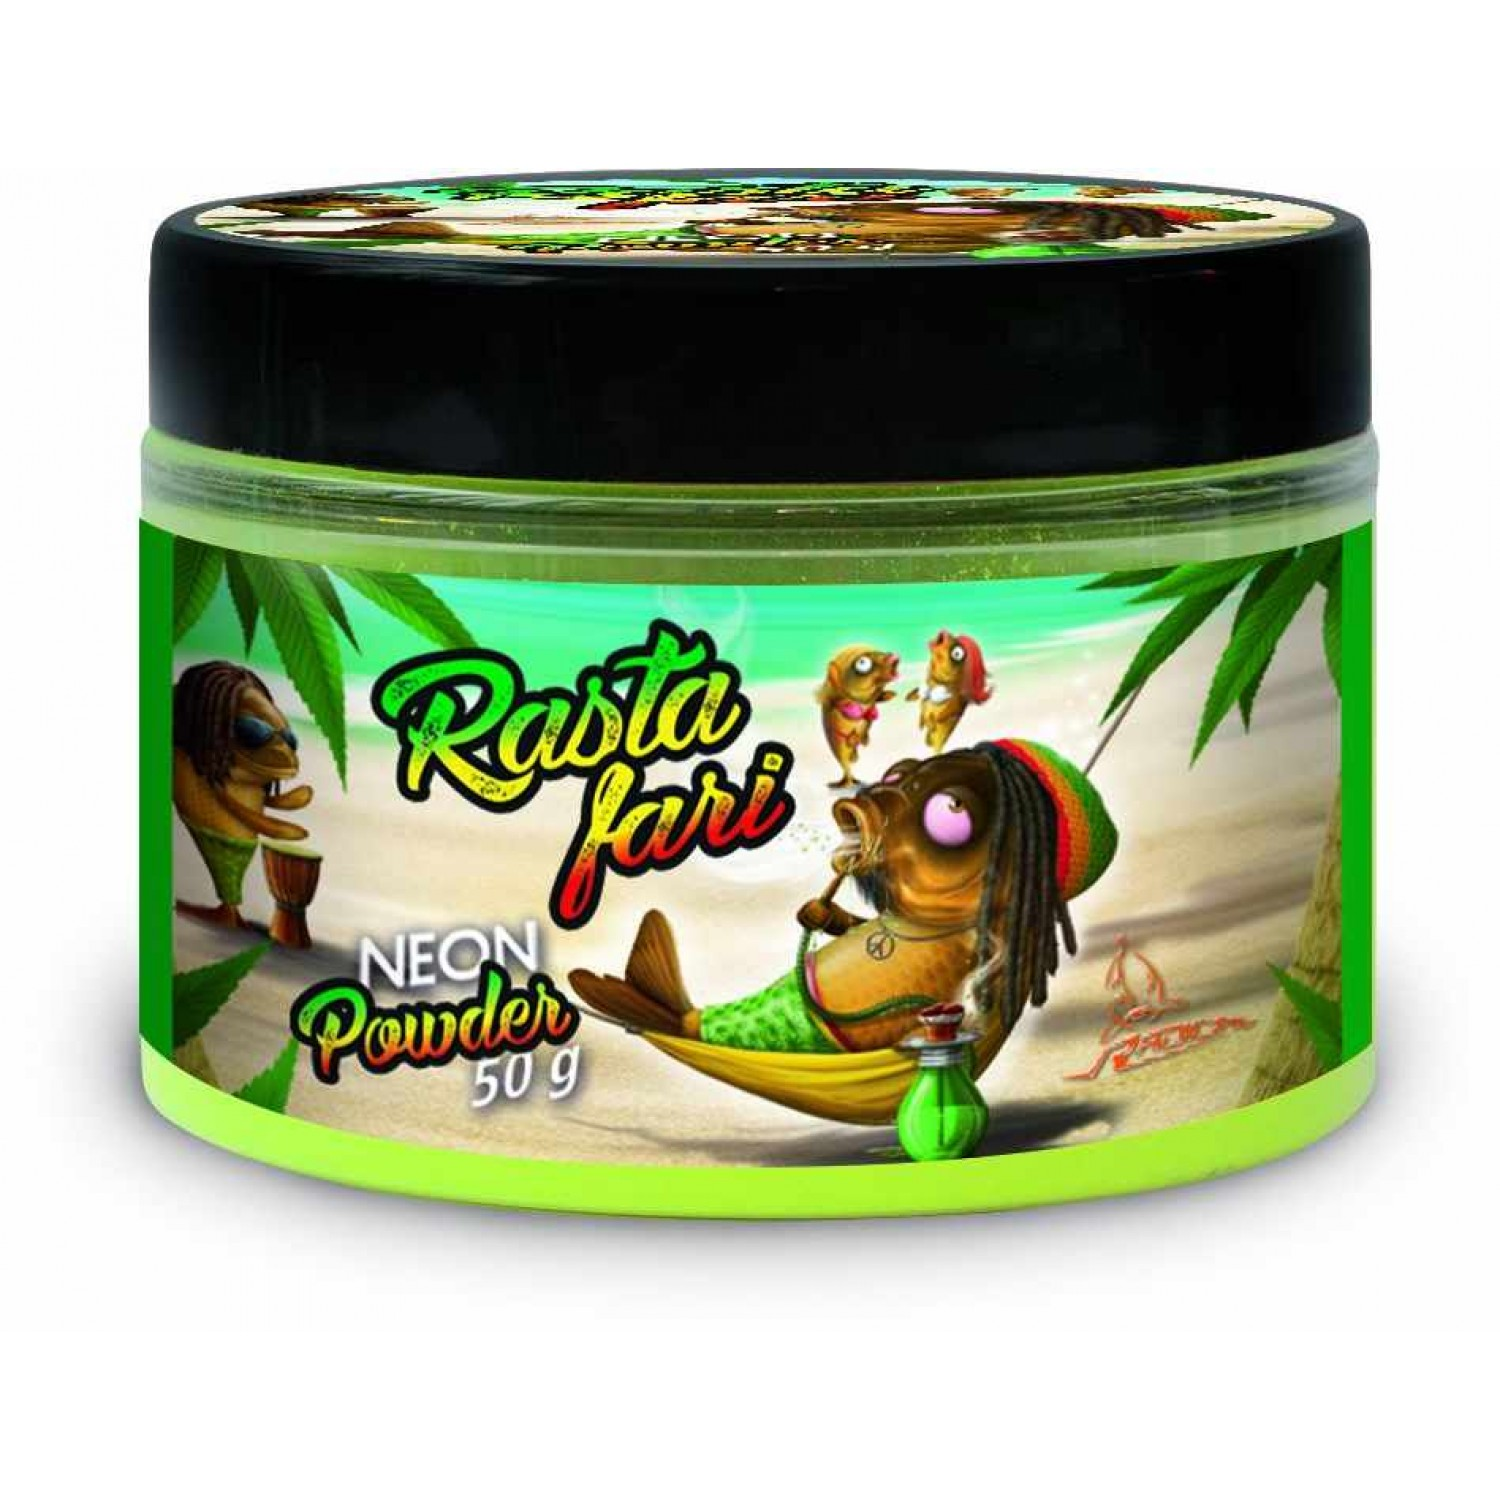 Quantum Radical Rastafari Neon Powder 50g